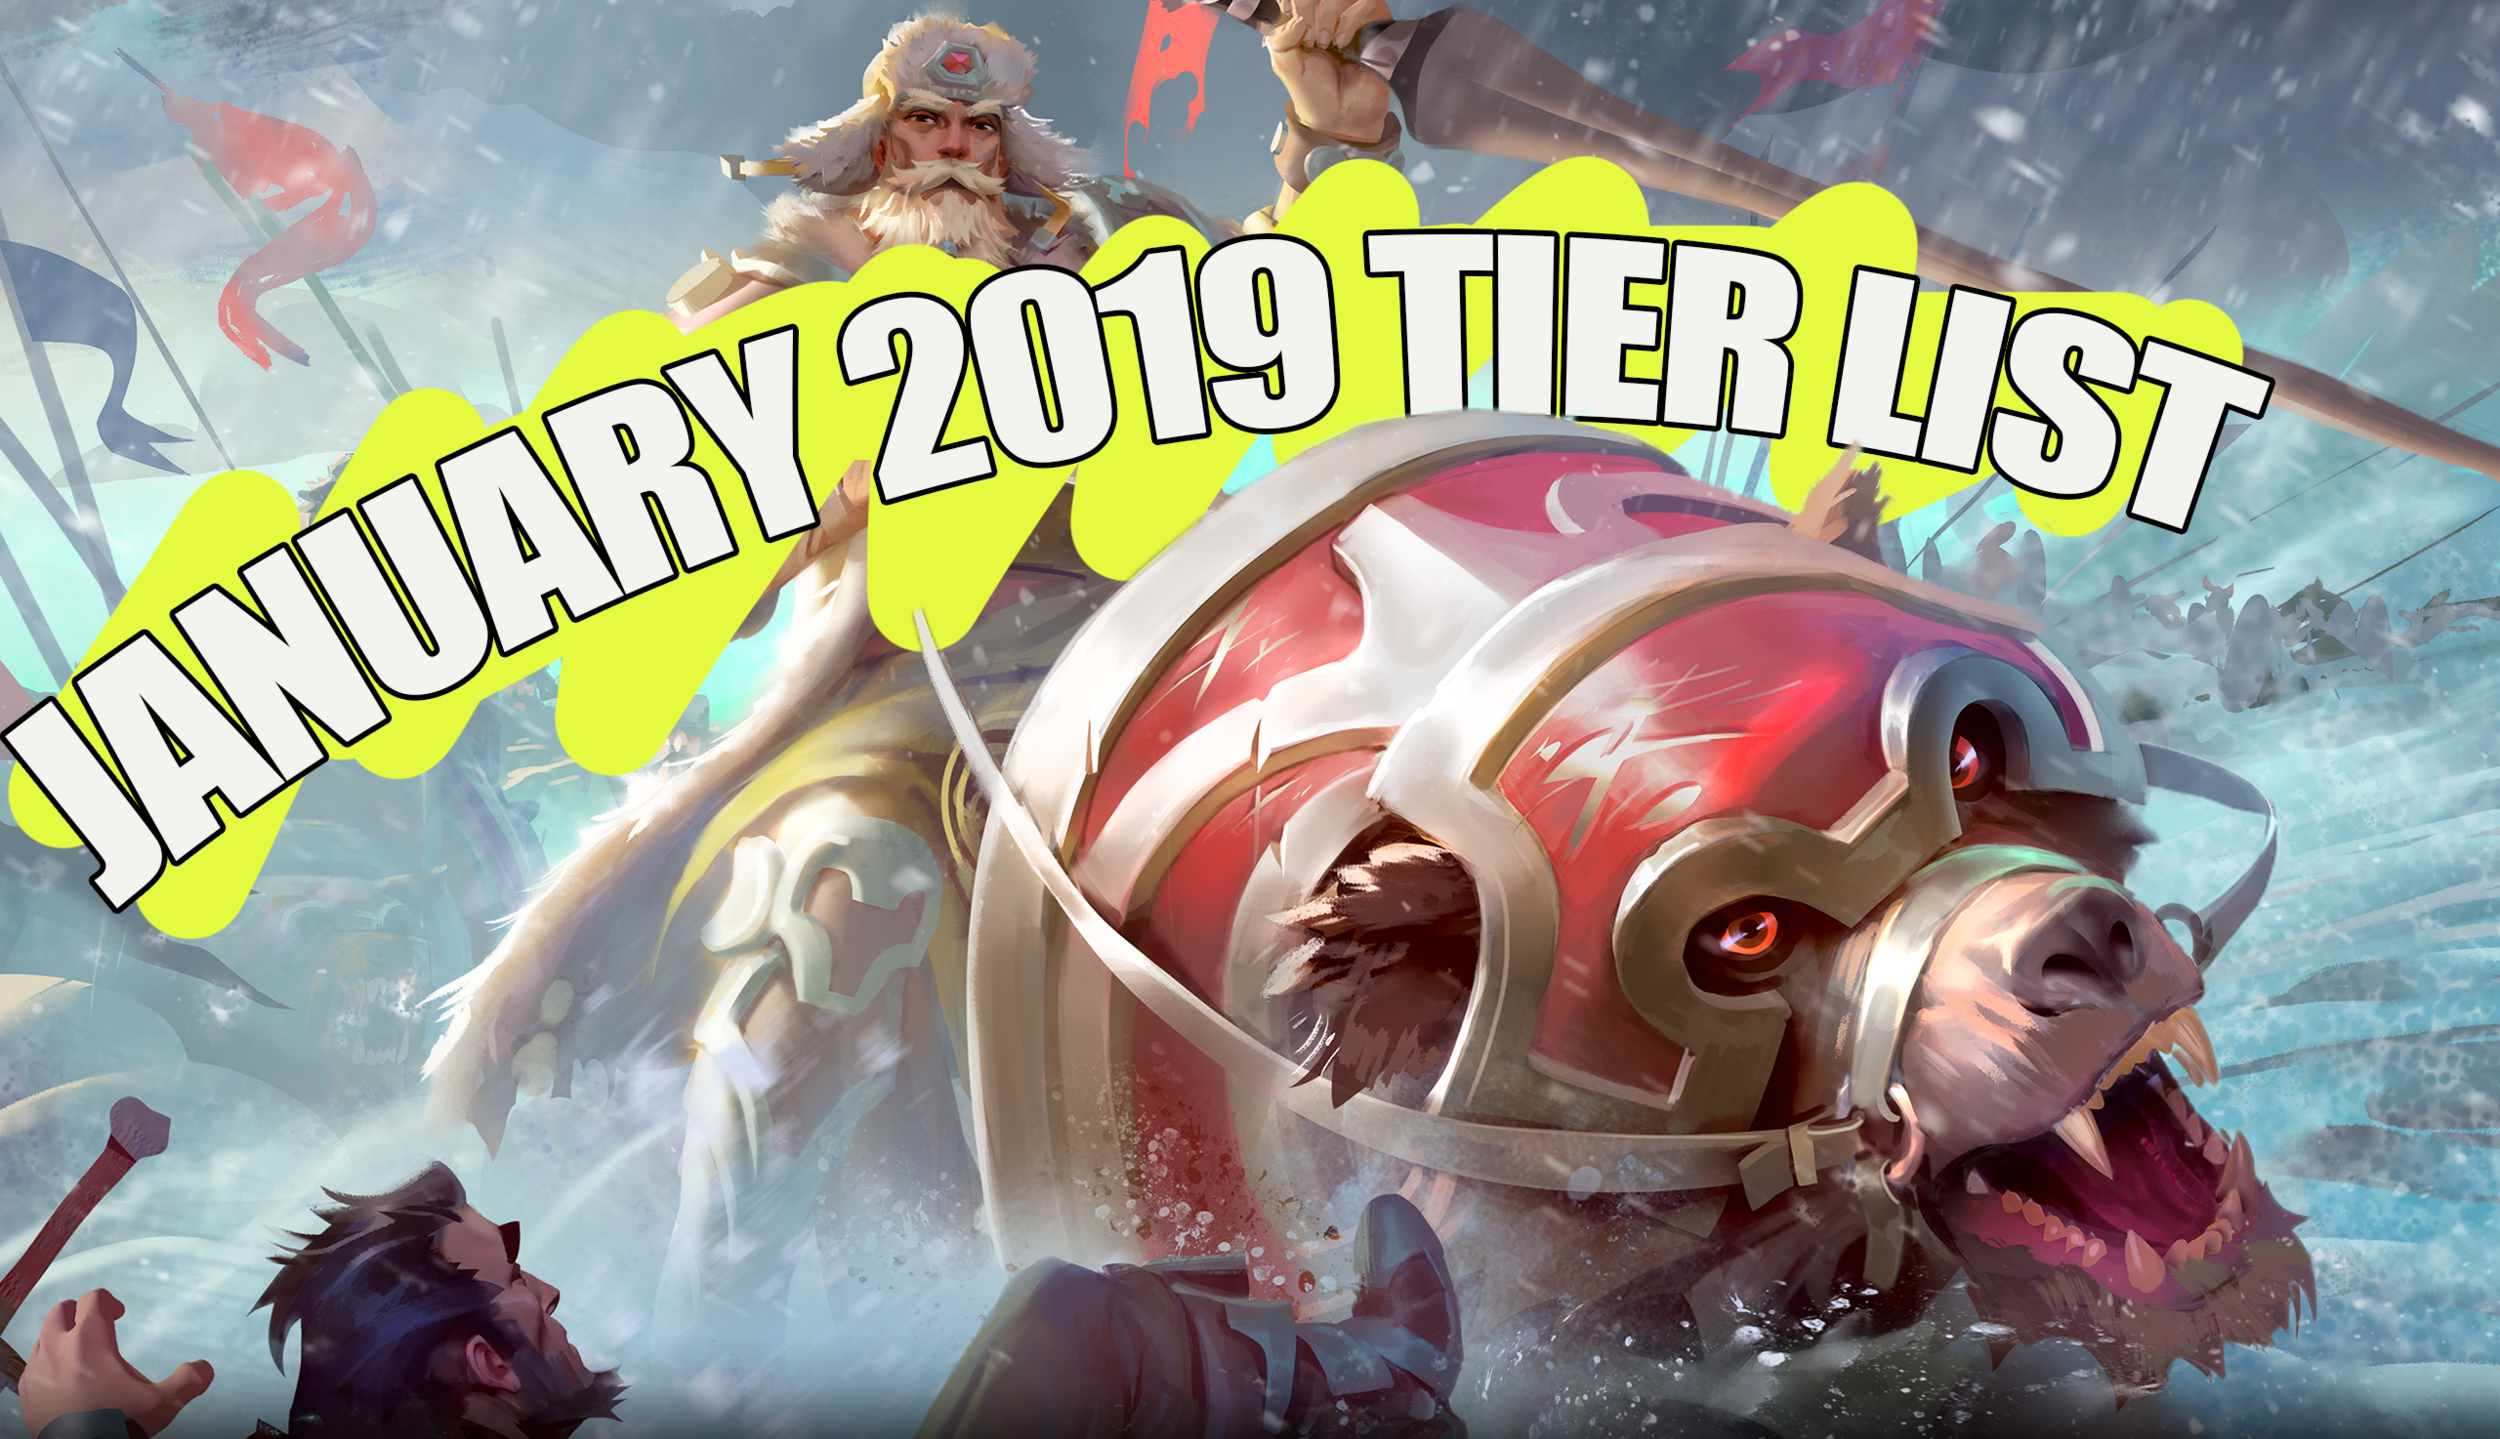 January 2018 Tier List - Let's take a look at the Defiance meta!Article - Neon - January 11, 2019